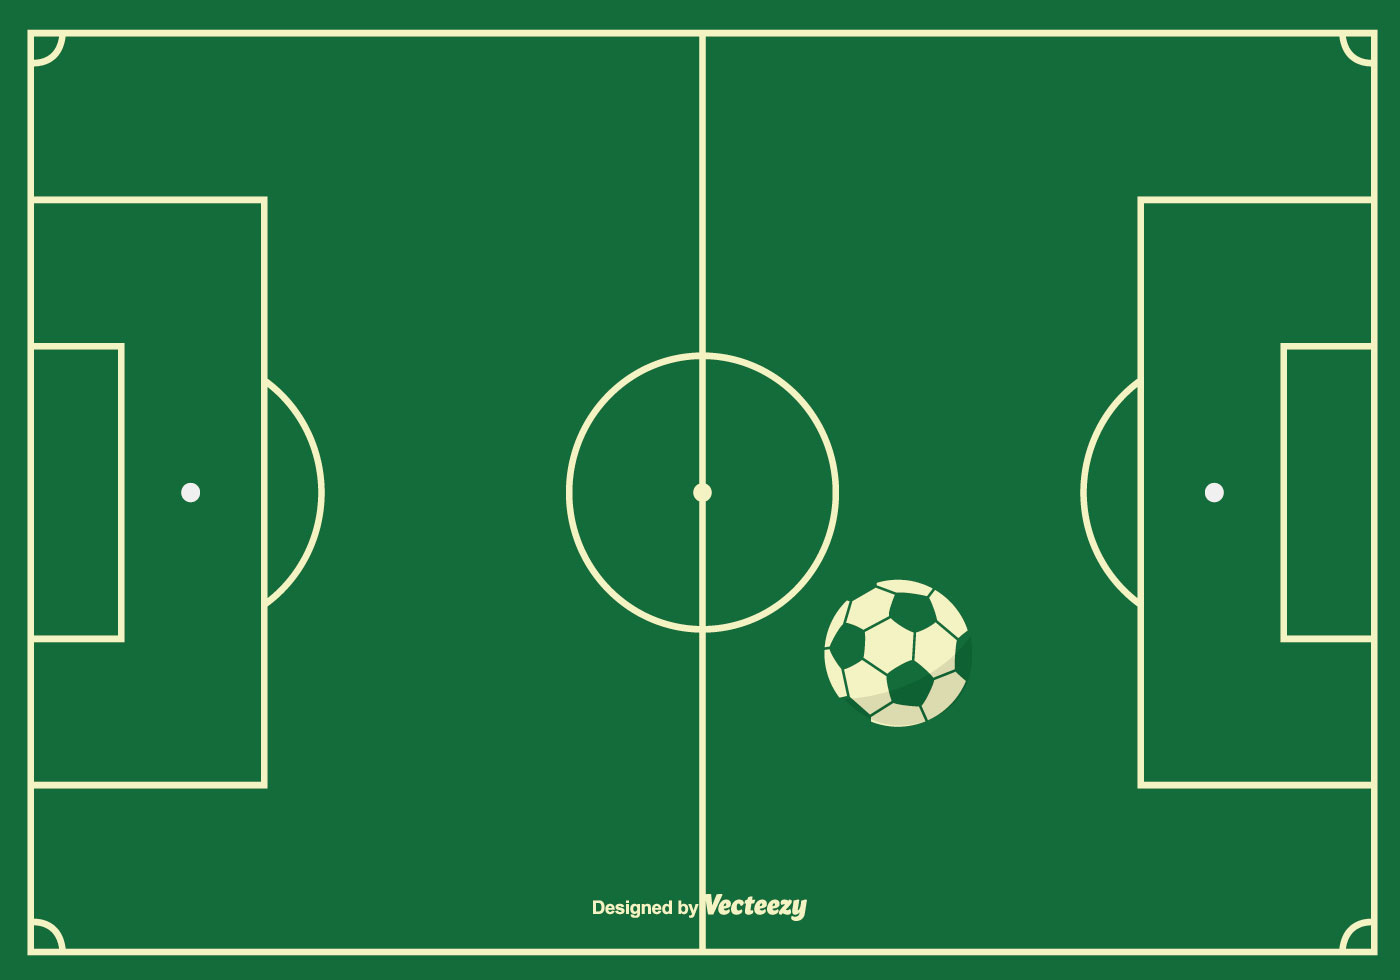 Football Field Background Download Free Vectors Clipart